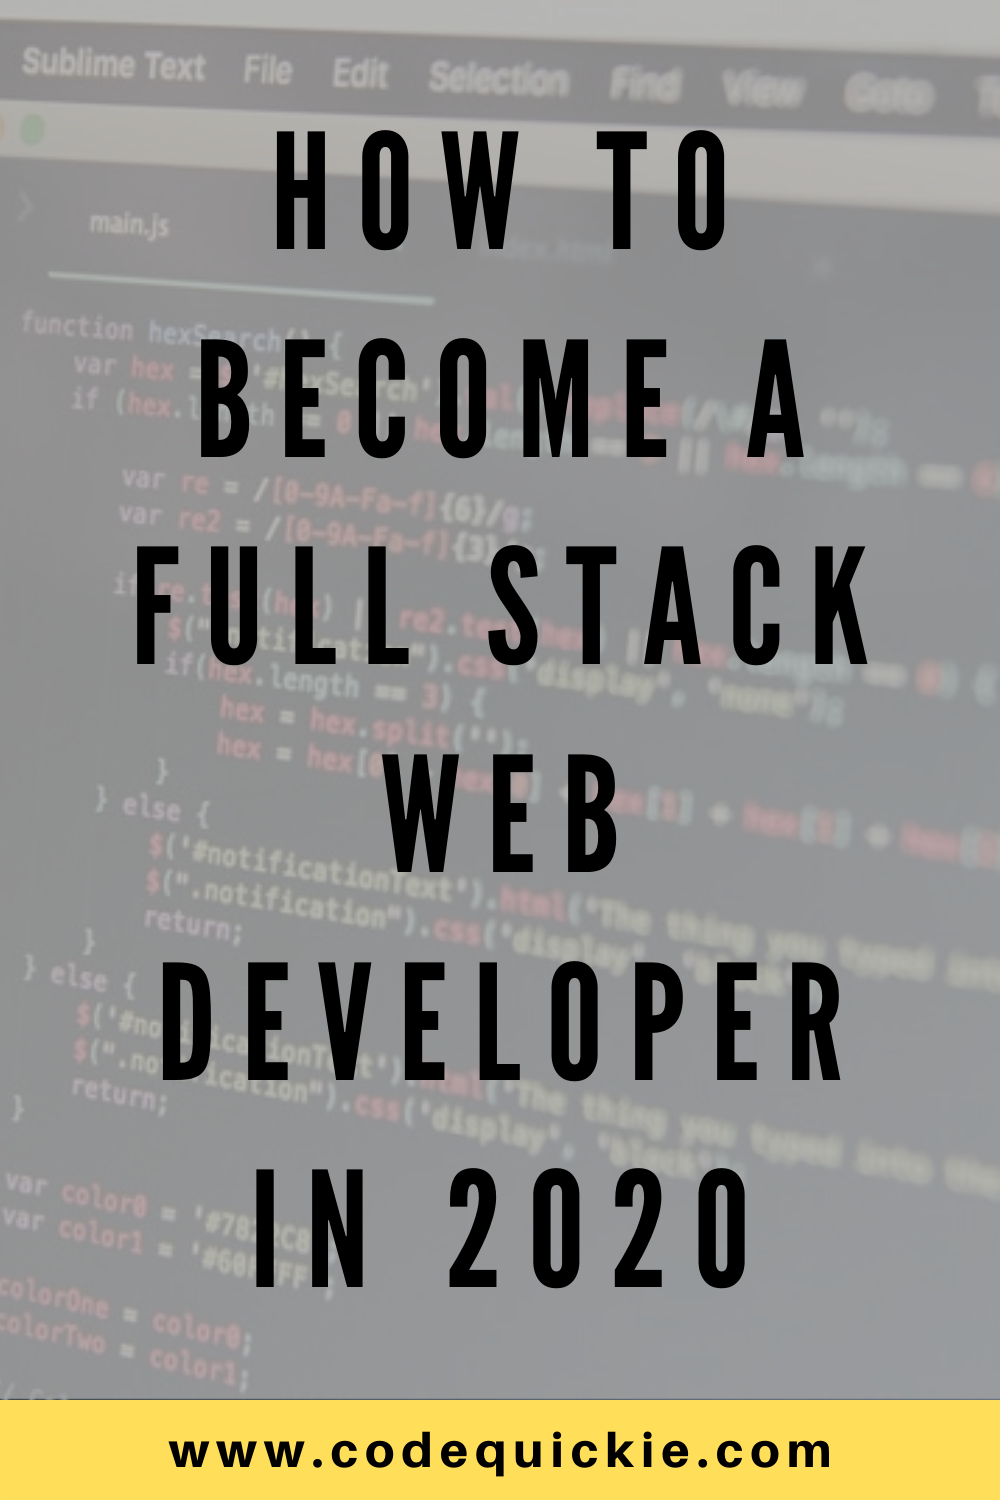 How To Become a Full Stack Web Developer in 2020 - Codequickie